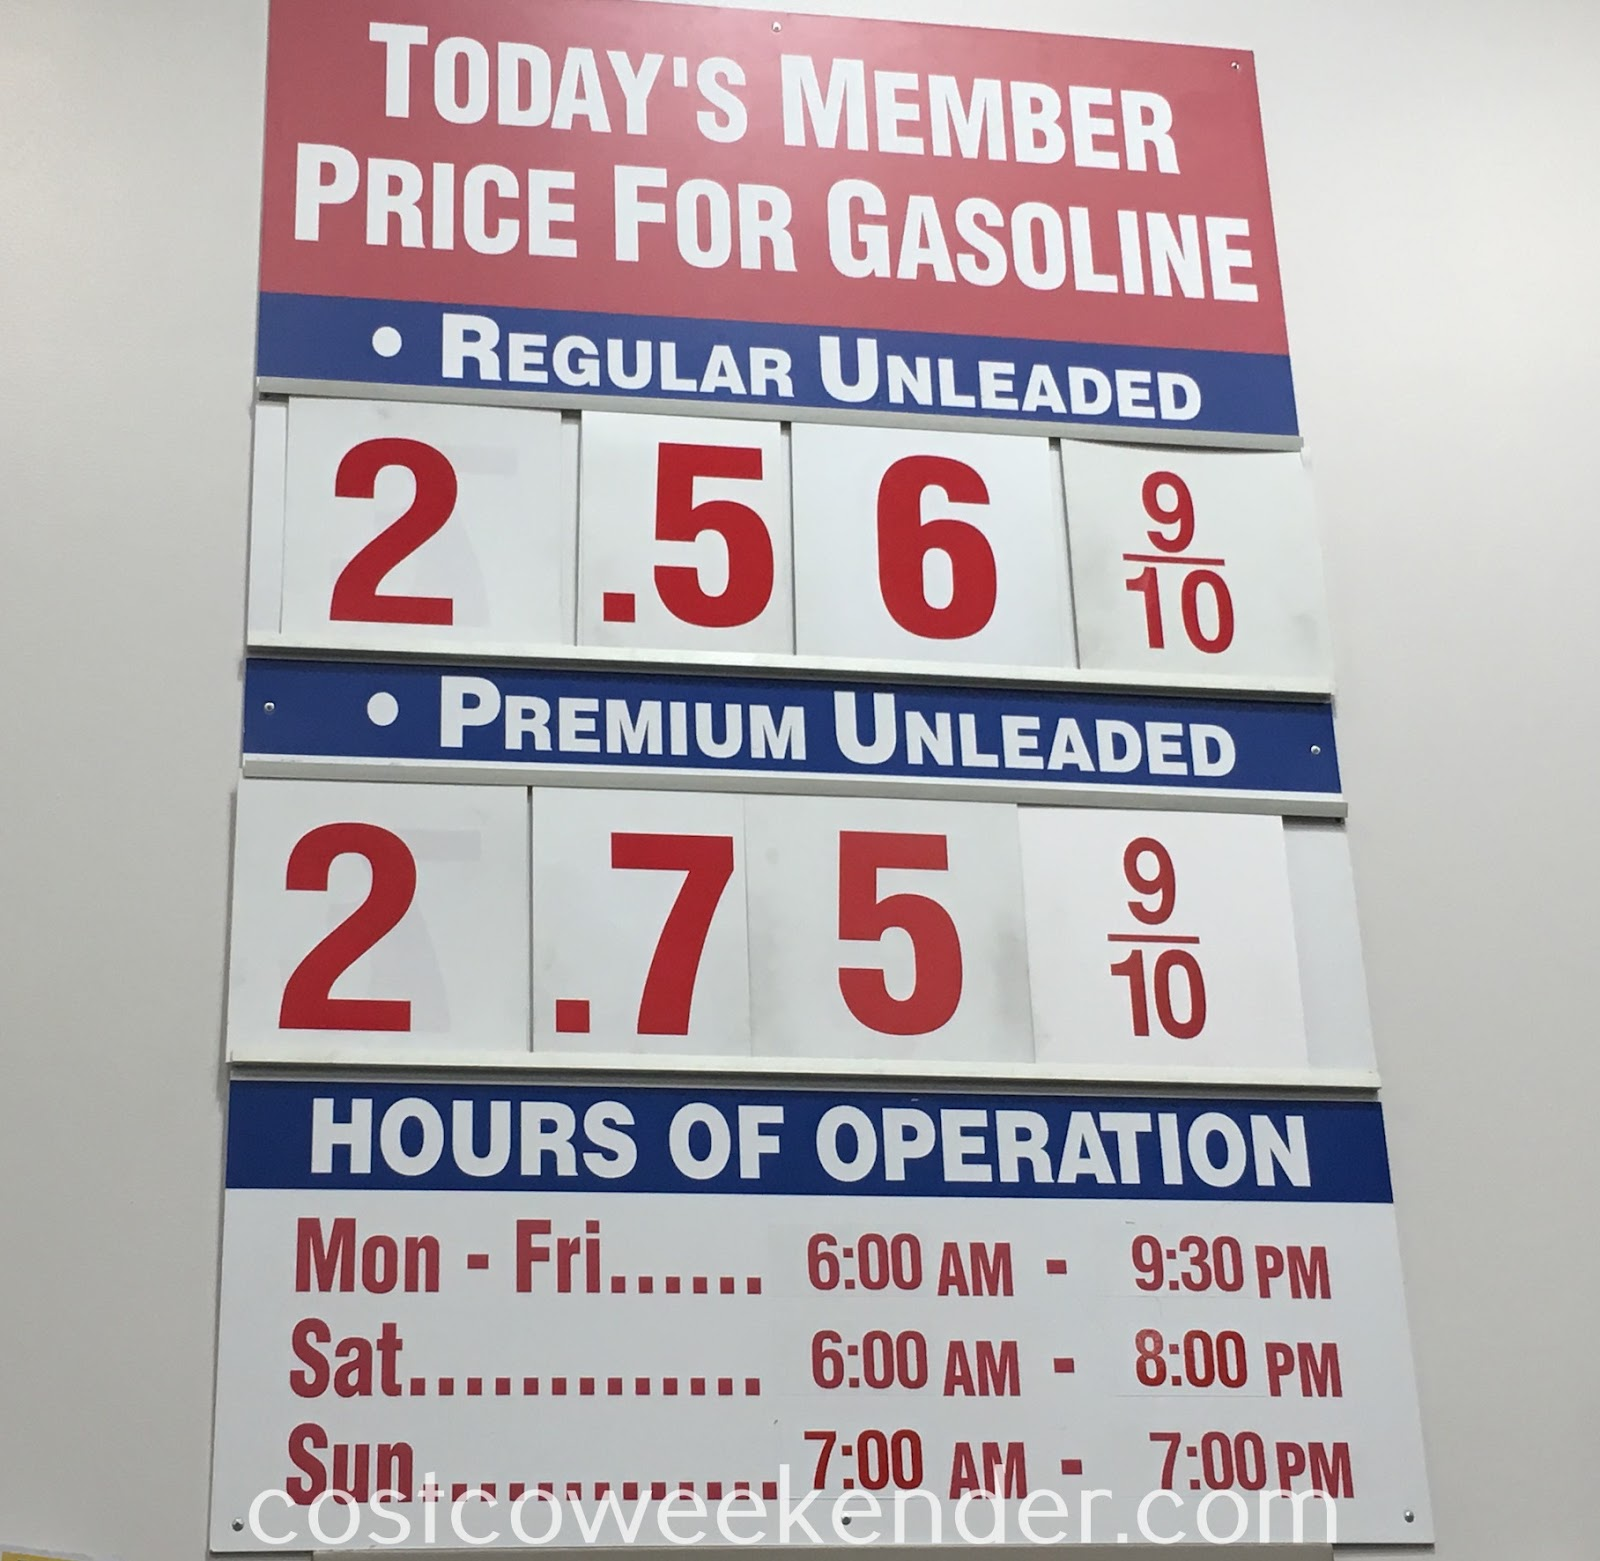 Costco gas for January 15, 2017 at Redwood City, CA